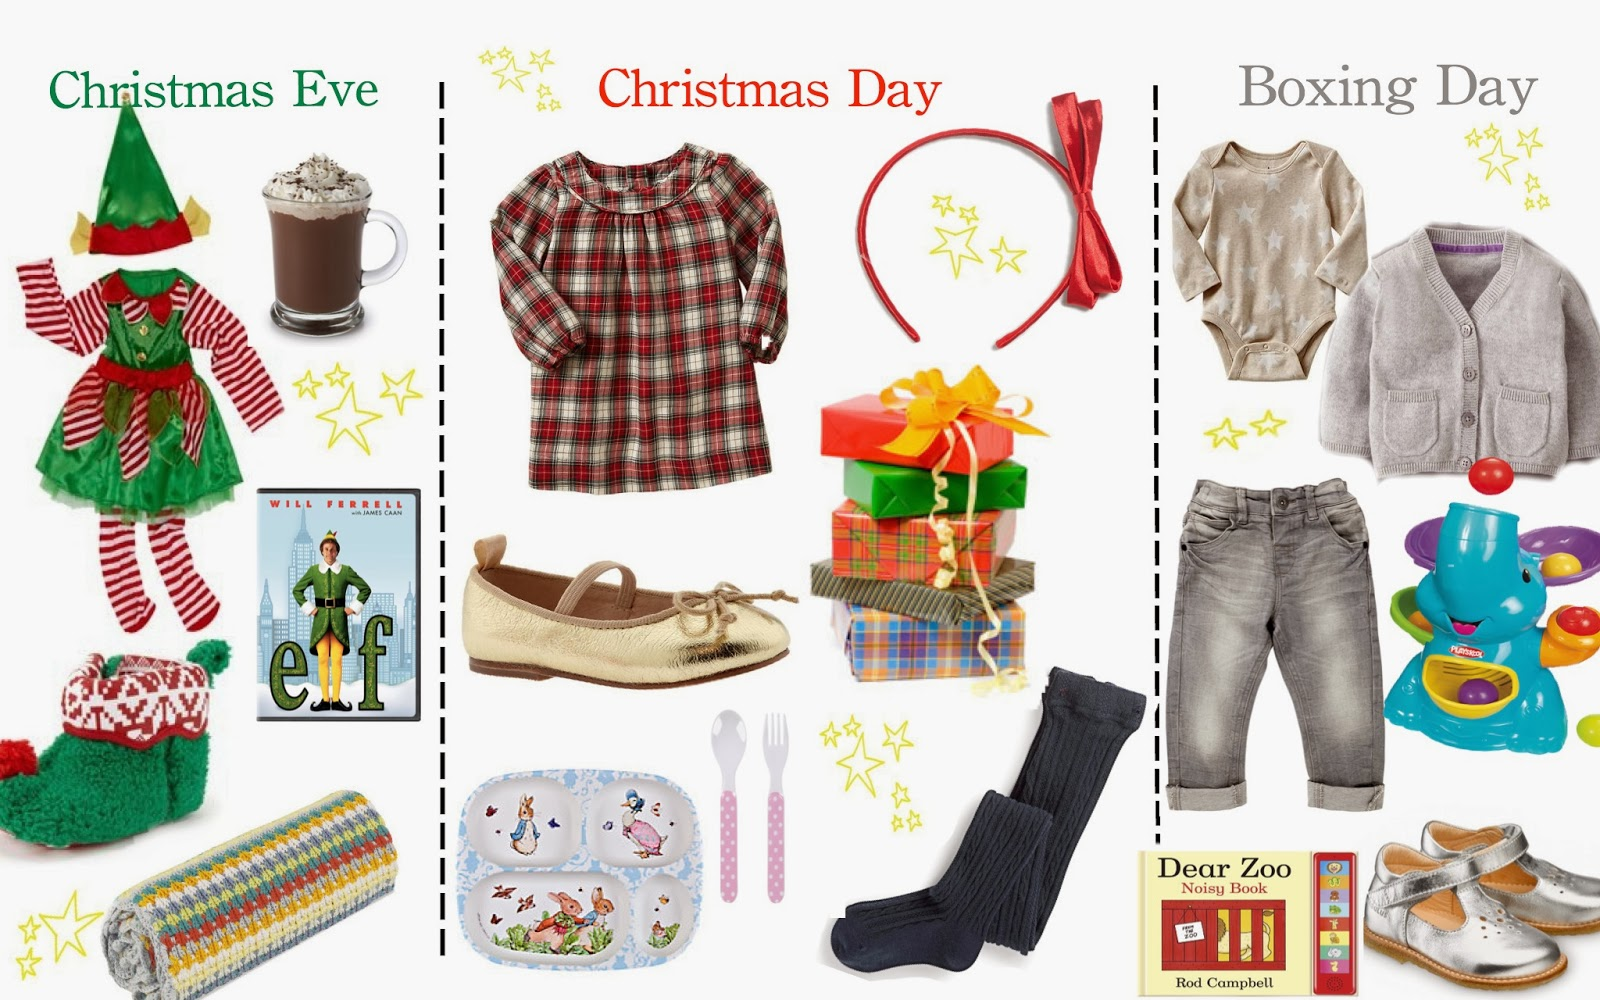 mamasVIB | V. I. BABY: 3 Days of Christmas style - a toddlers festive wardrobe, kids style, fashion, girls fashion, christmas eve clothes, looks for christmas day, boxing day clothes, festive dressing, kids fashion